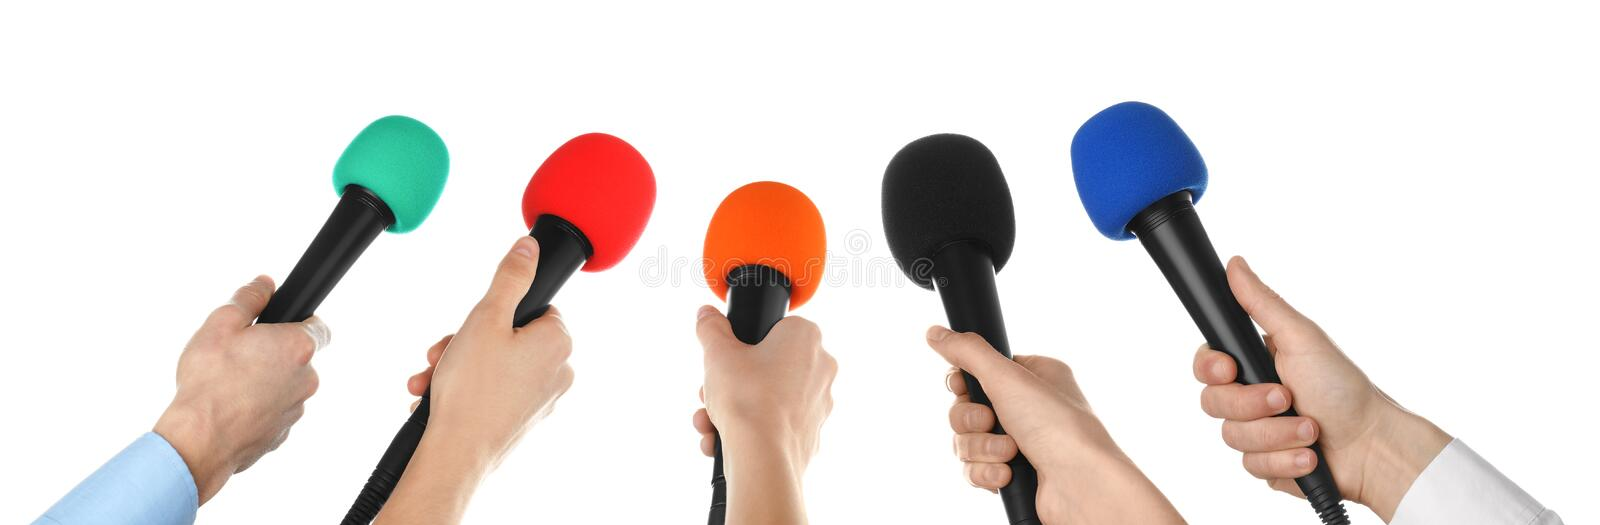 People holding different microphones on white background royalty free stock photo